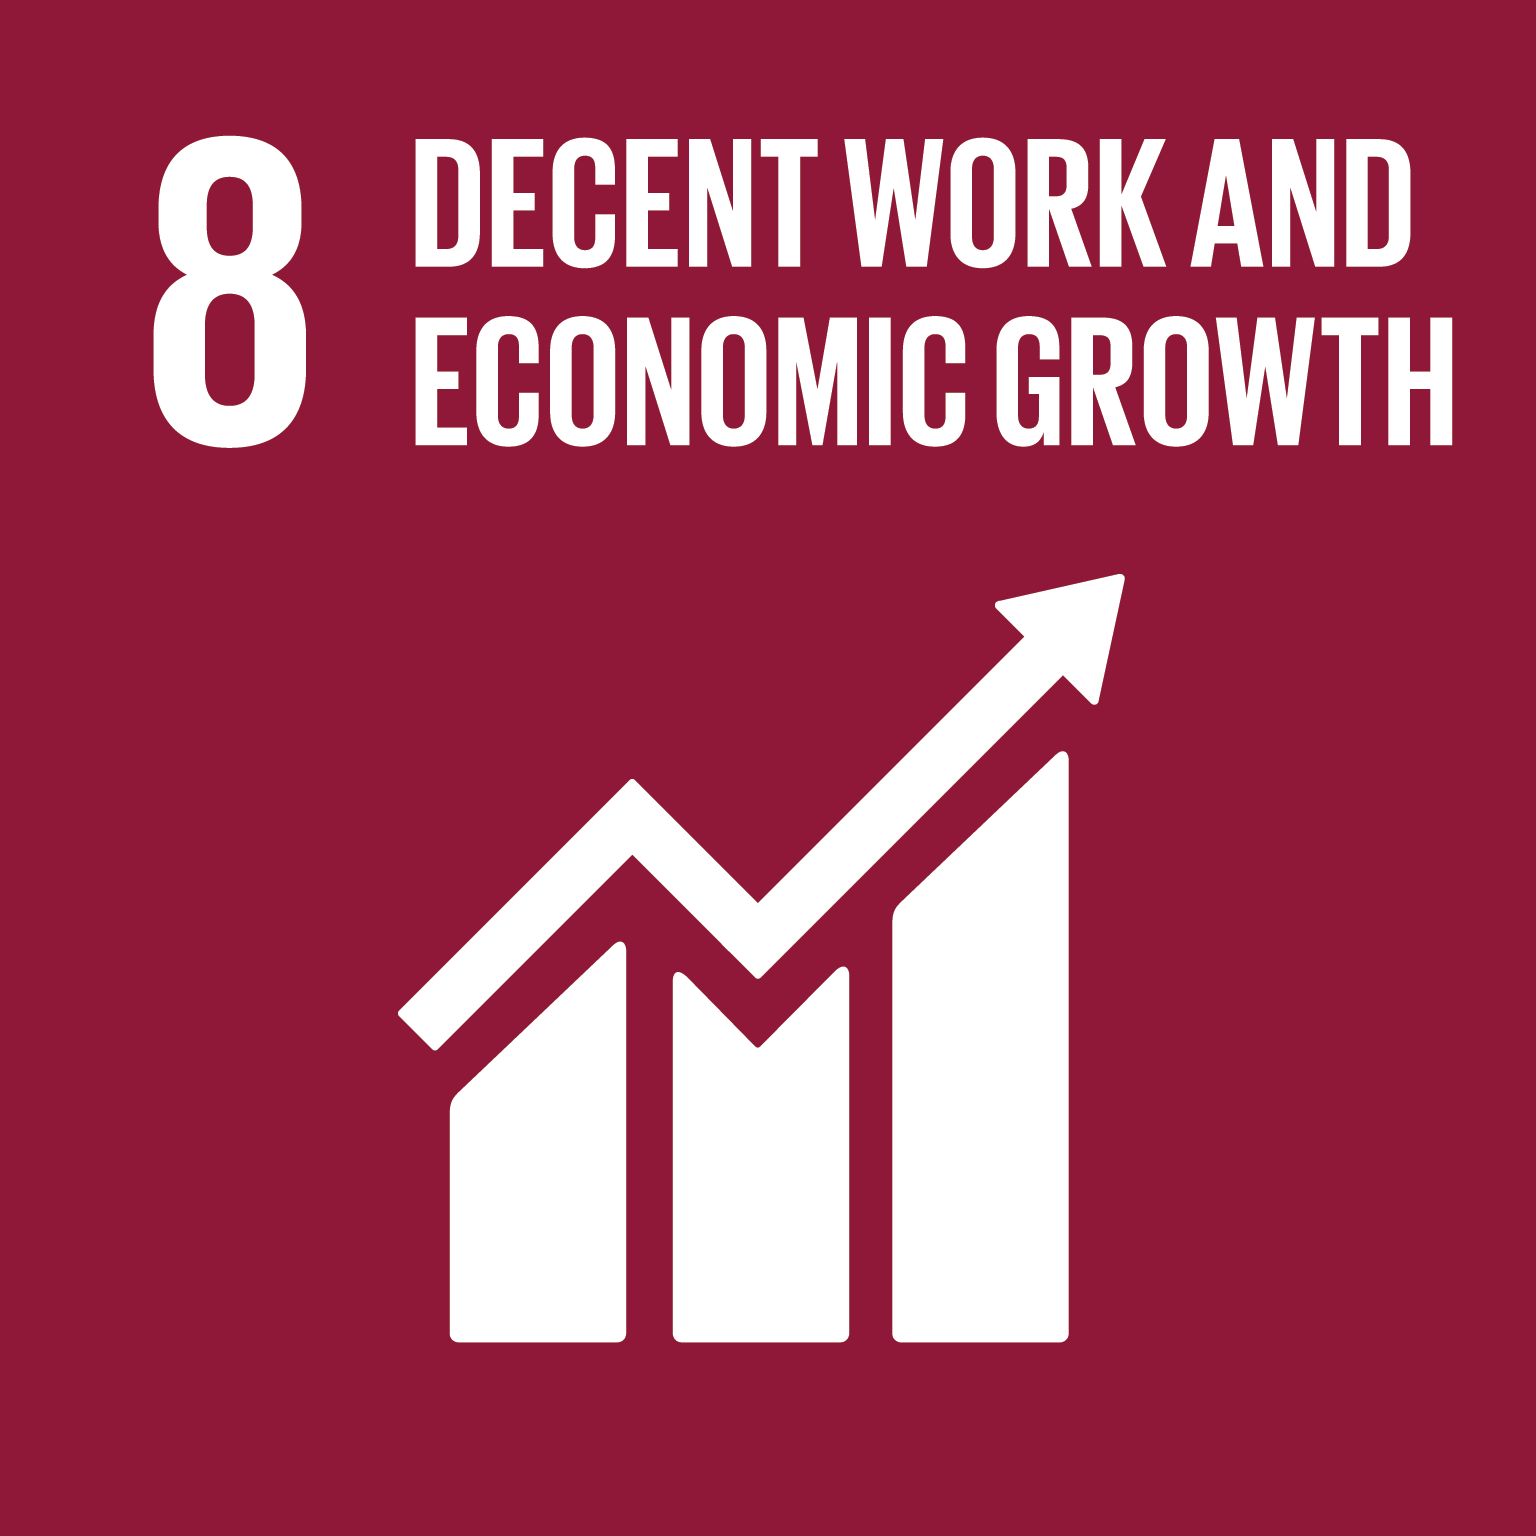 U.N. SDG goal 8, decent work and economic growth